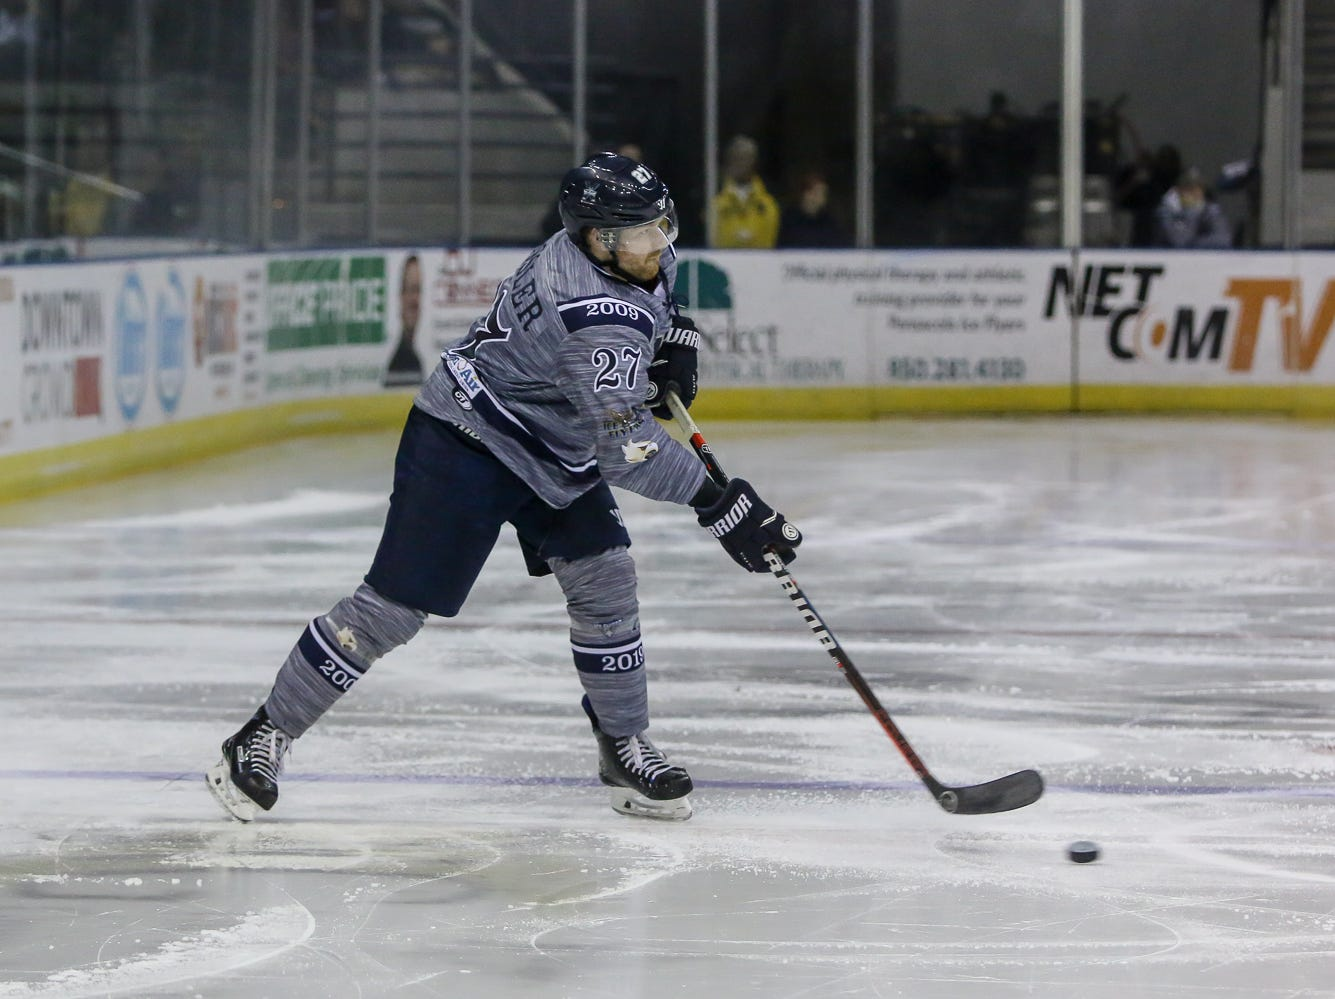 Pensacola's Jesse Kessler (27) passes the puck against Macon during the last home game of the regular season at the Pensacola Bay Center on Saturday, March 23, 2019. With over 4,300 people in attendance for Pensacola's 3-1 victory, the Ice Flyers mark six straight years of over 100,000 people at their home games each season. The team has won their last five games in a row and will finish out their last five games on the road before entering the playoffs in a couple of weeks.